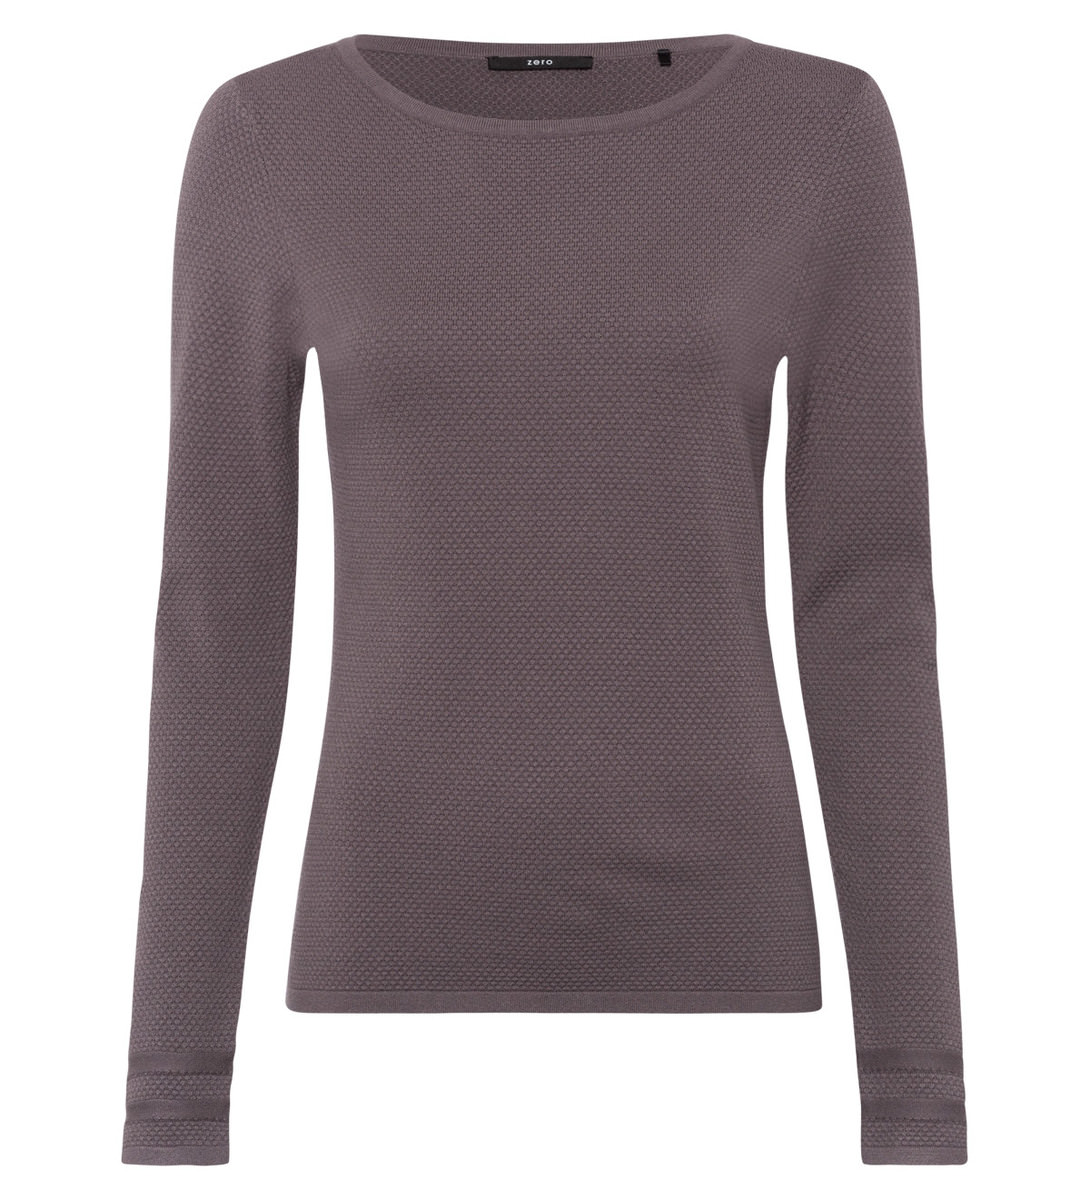 Pullover Sina in taupe